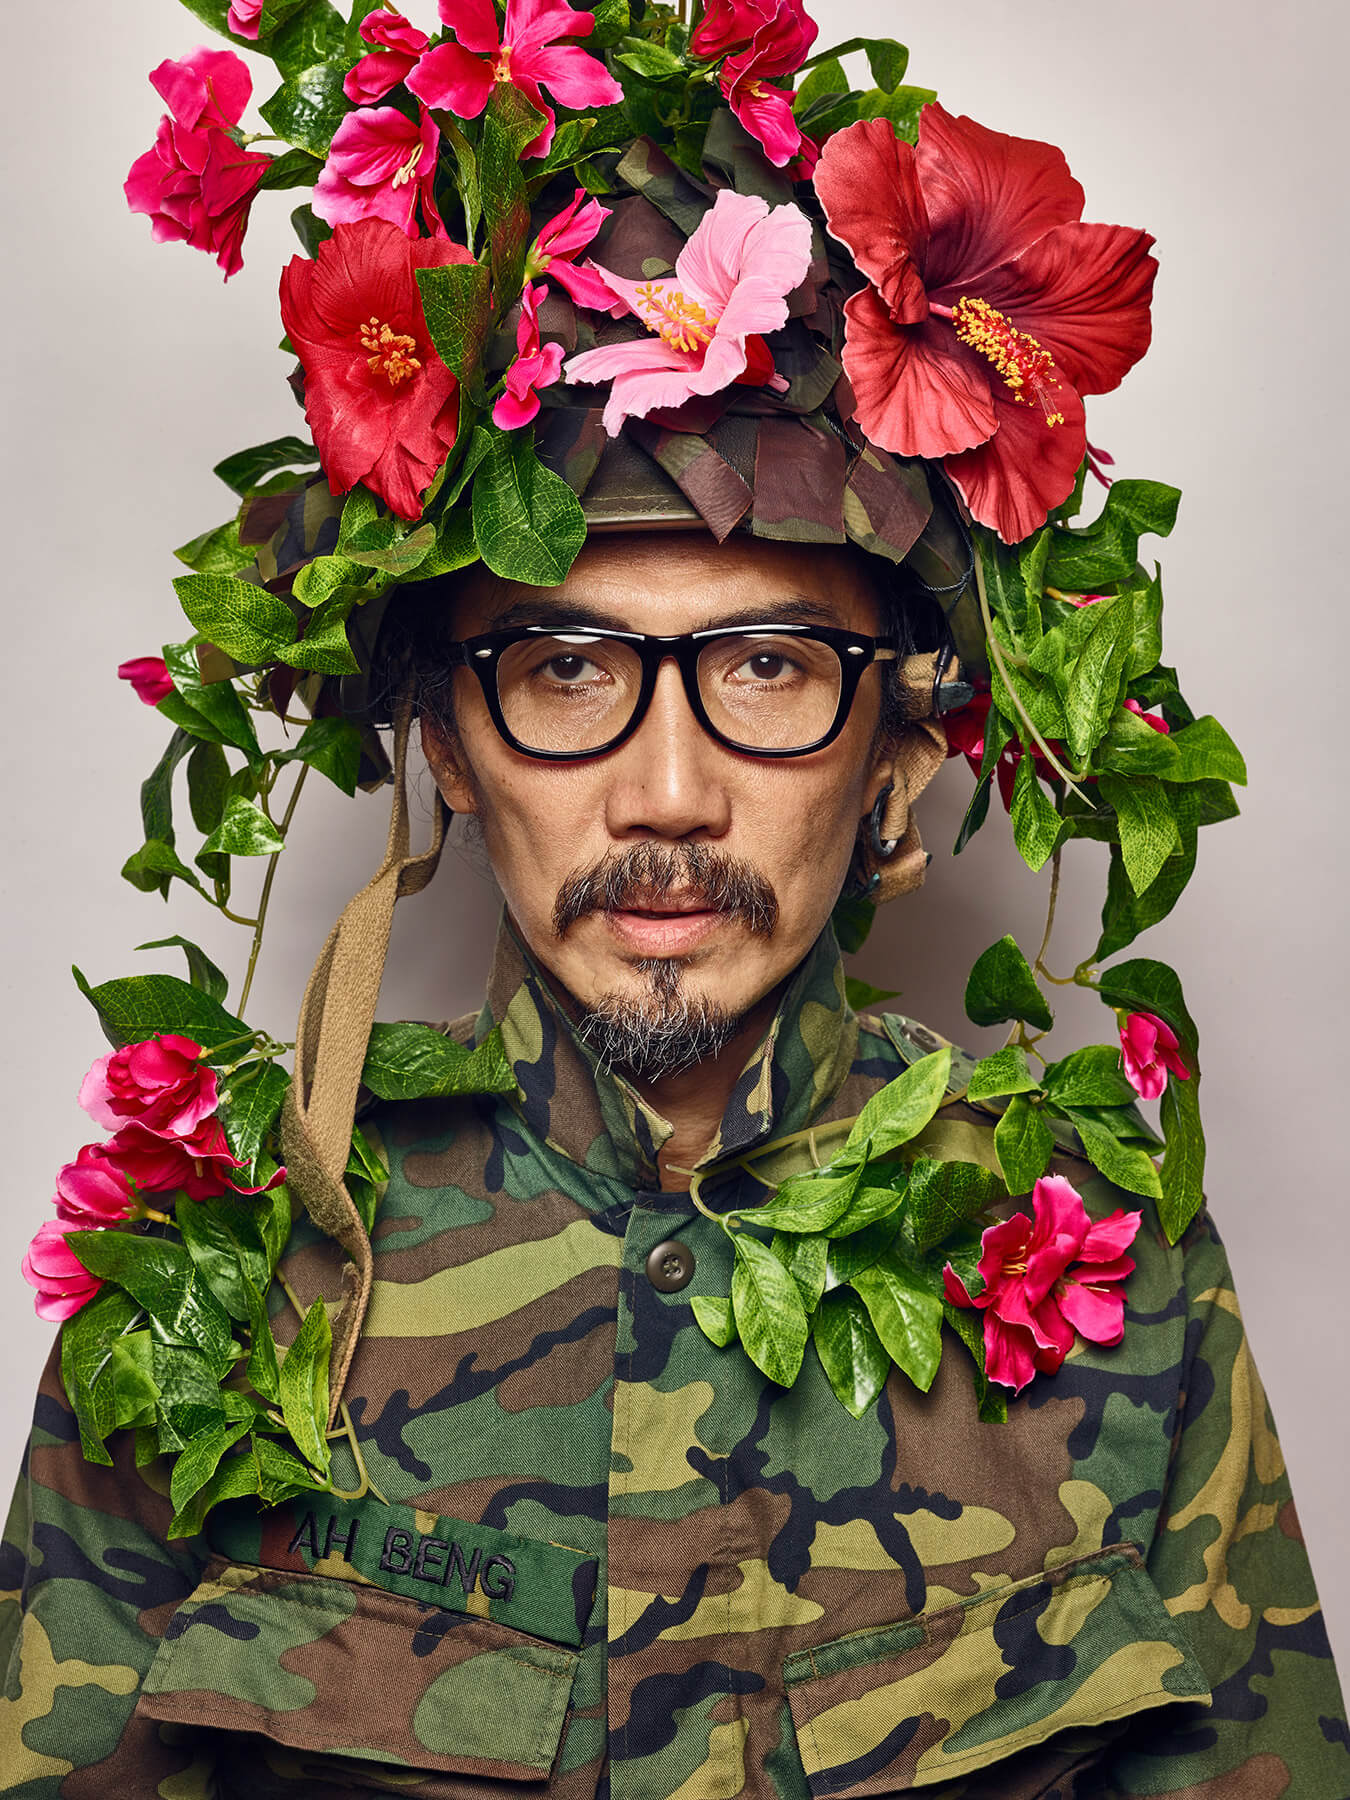 2 Aug 2017 Derong is in army uniform and has on fake bright flowers as camouflage